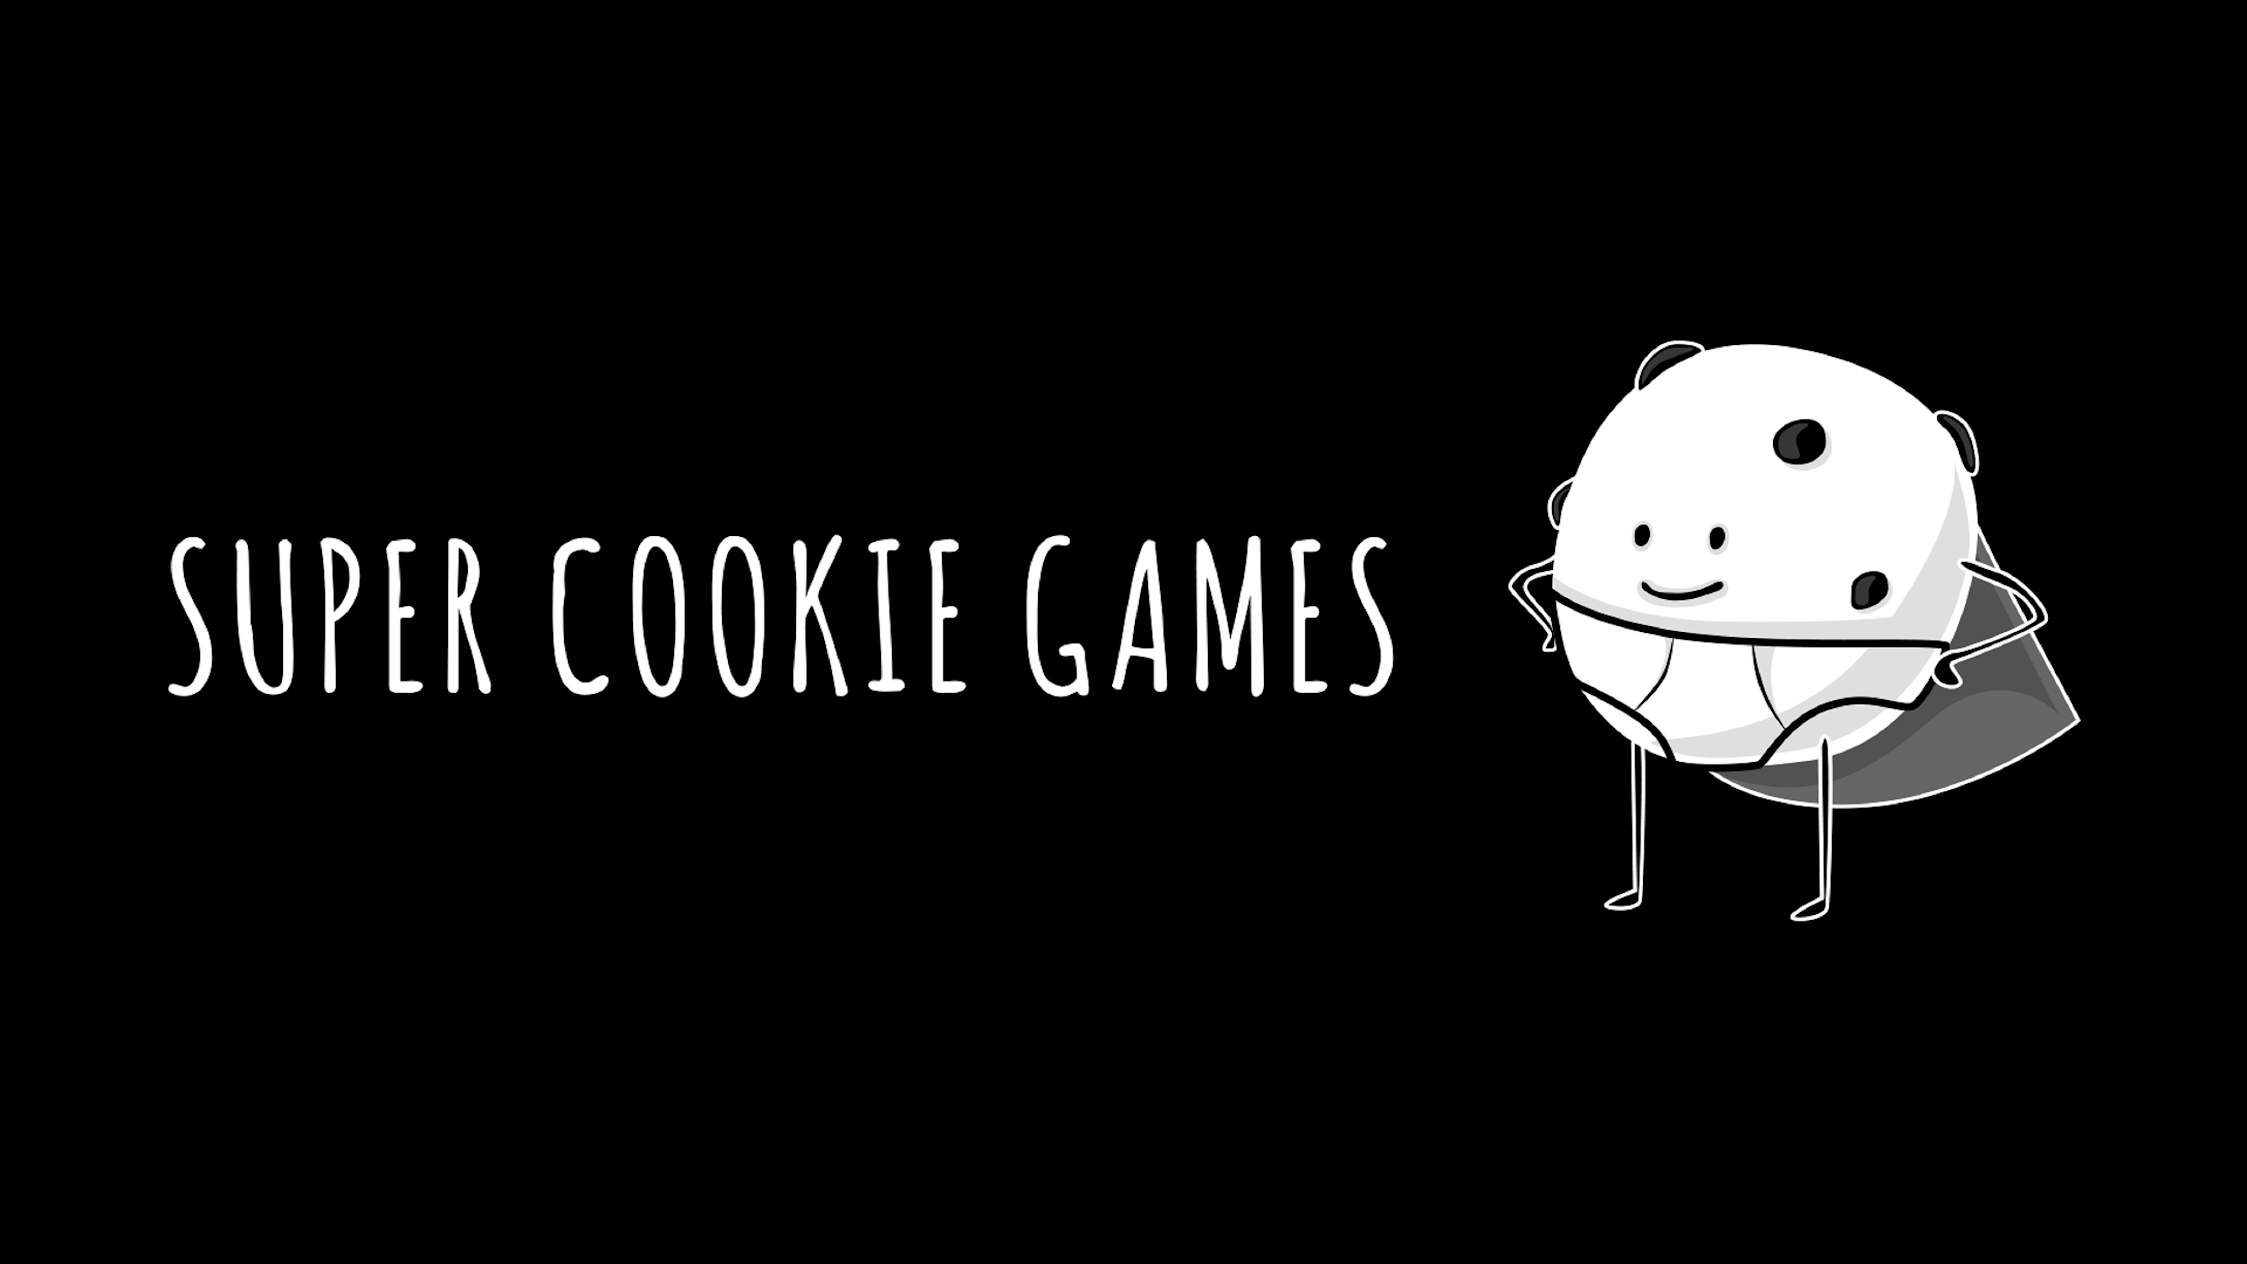 Super Cookie Games